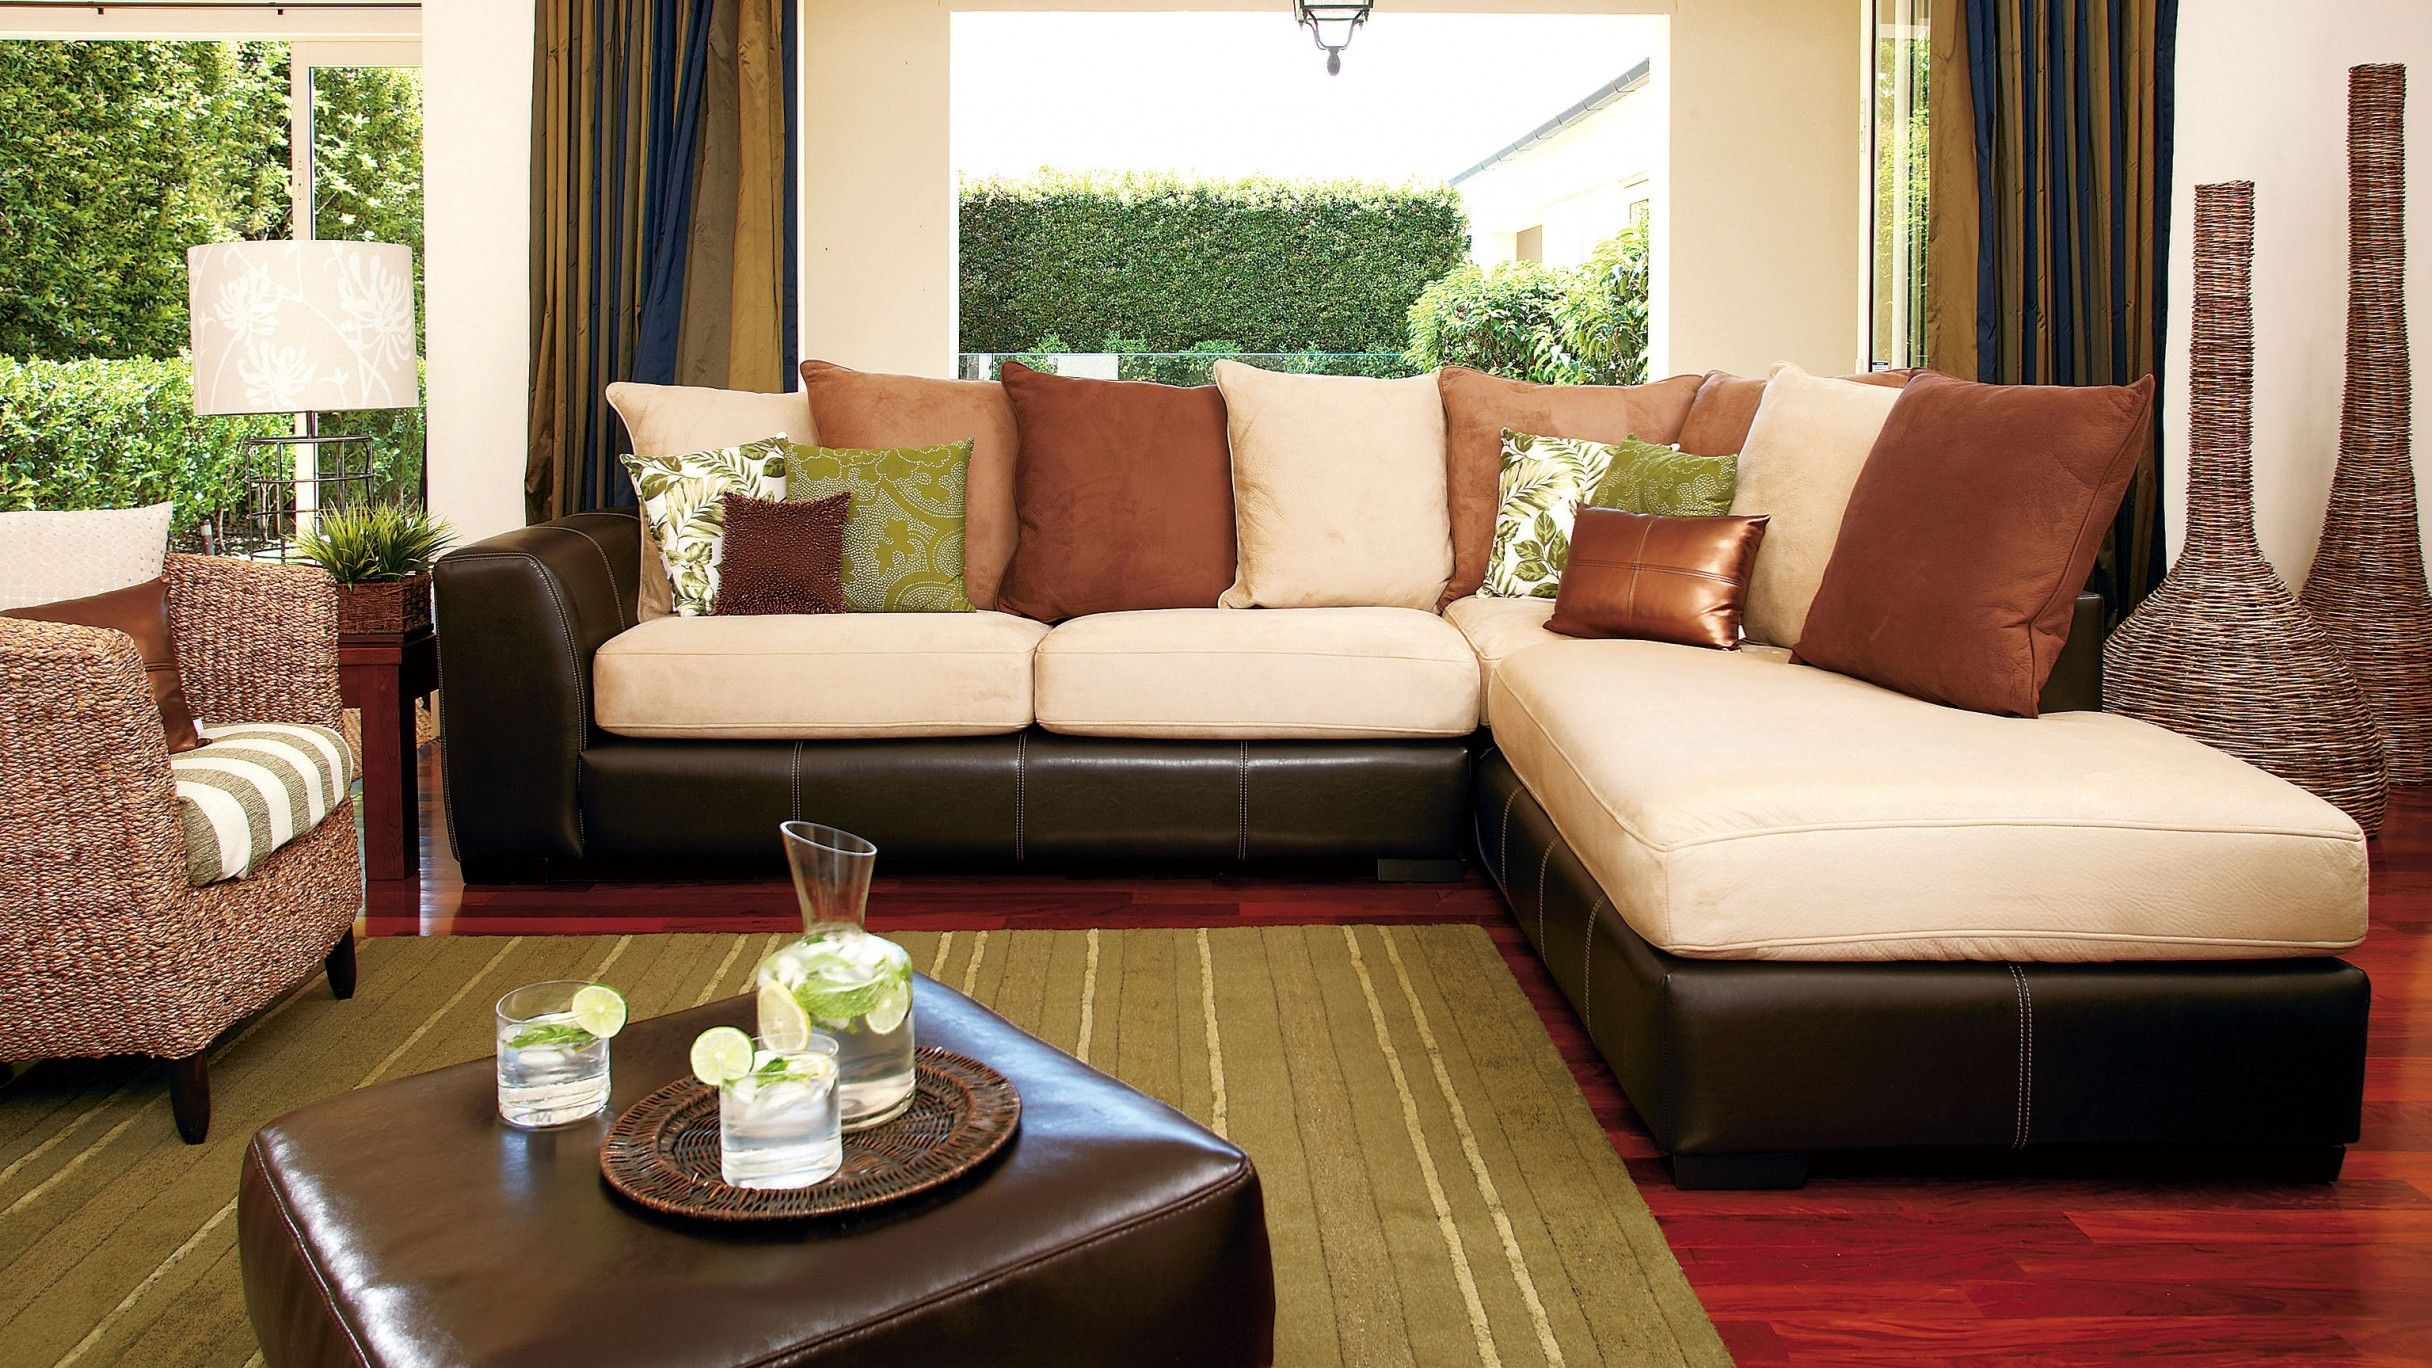 Sofa Sale Harveys 100 Harveys Furniture Sale Sofa Beds Top 25 Man Cave Sofas From